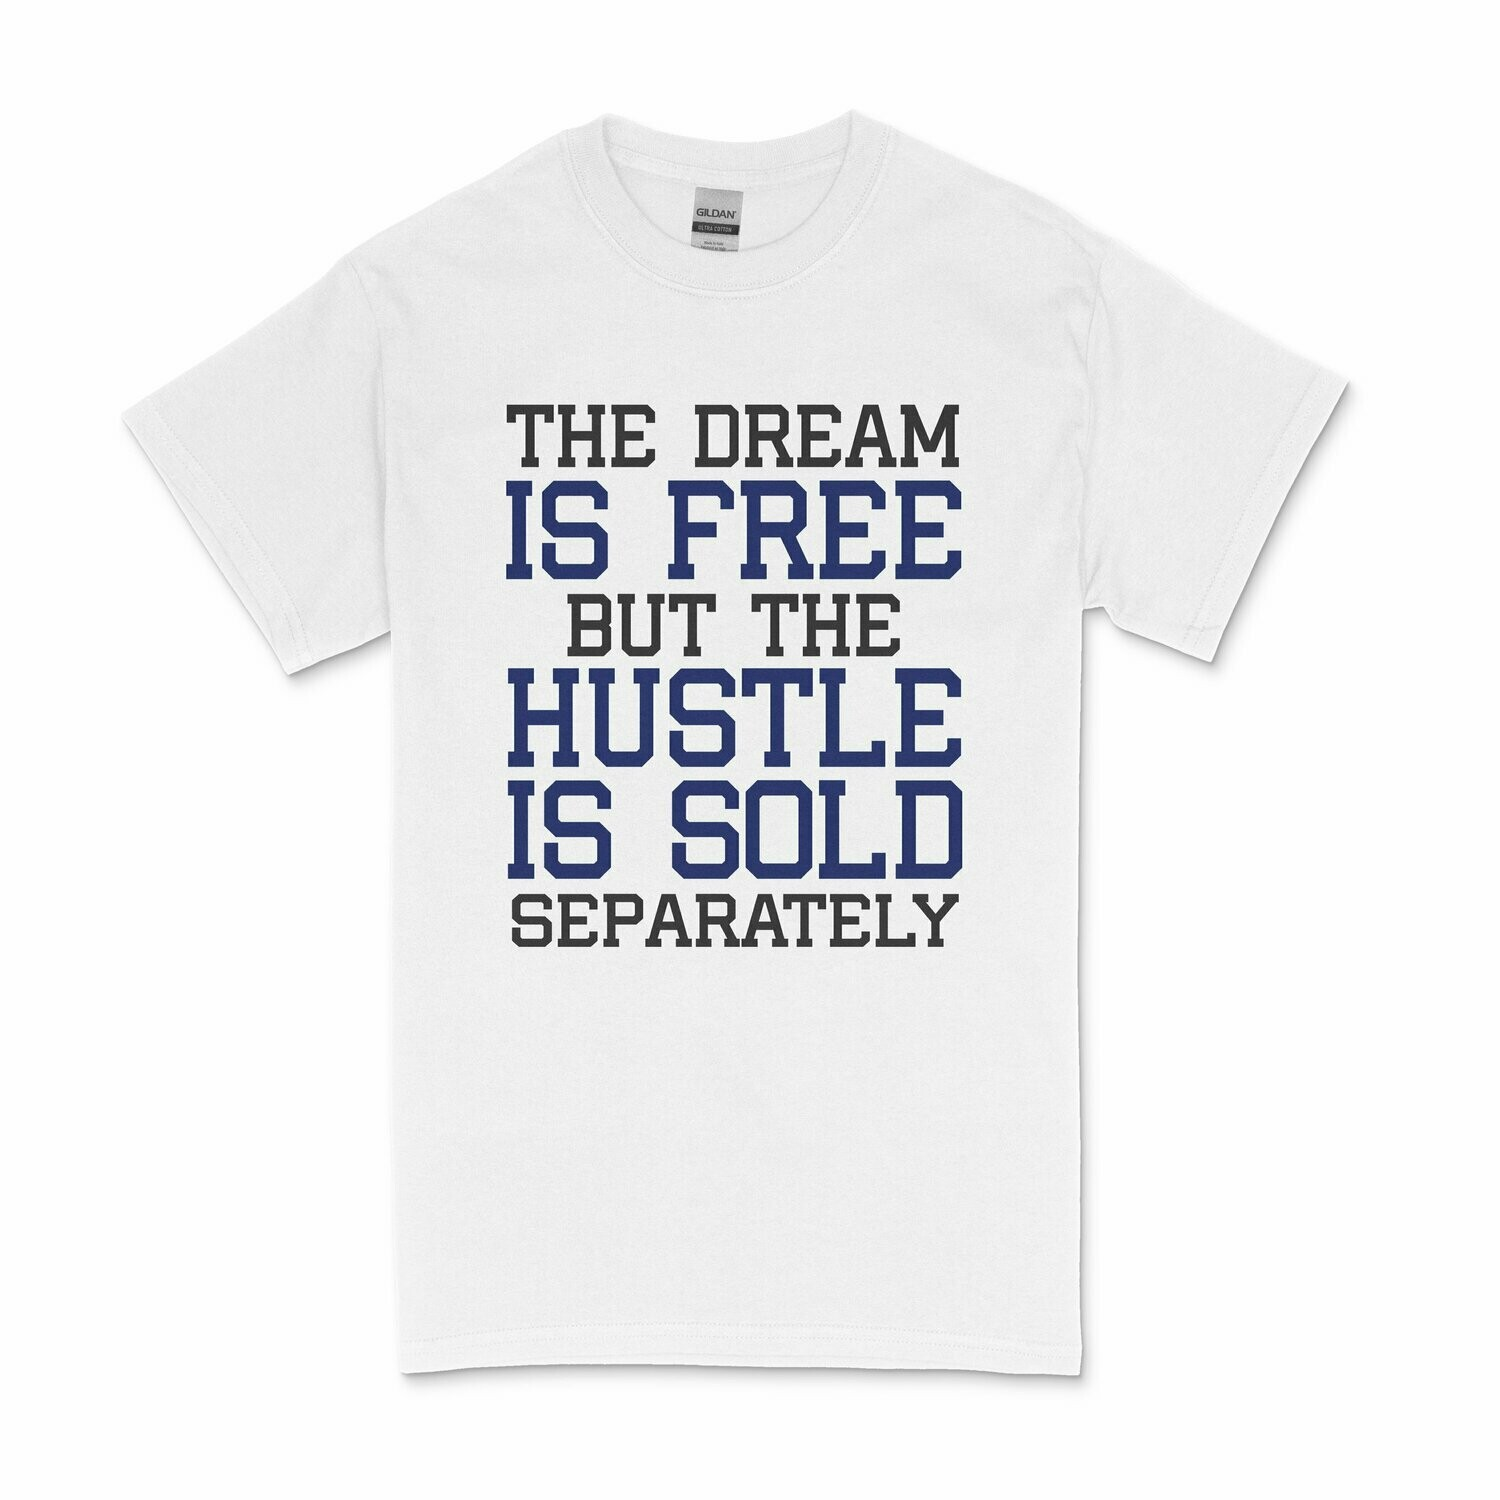 The Dream Is Free Men's T-shirt